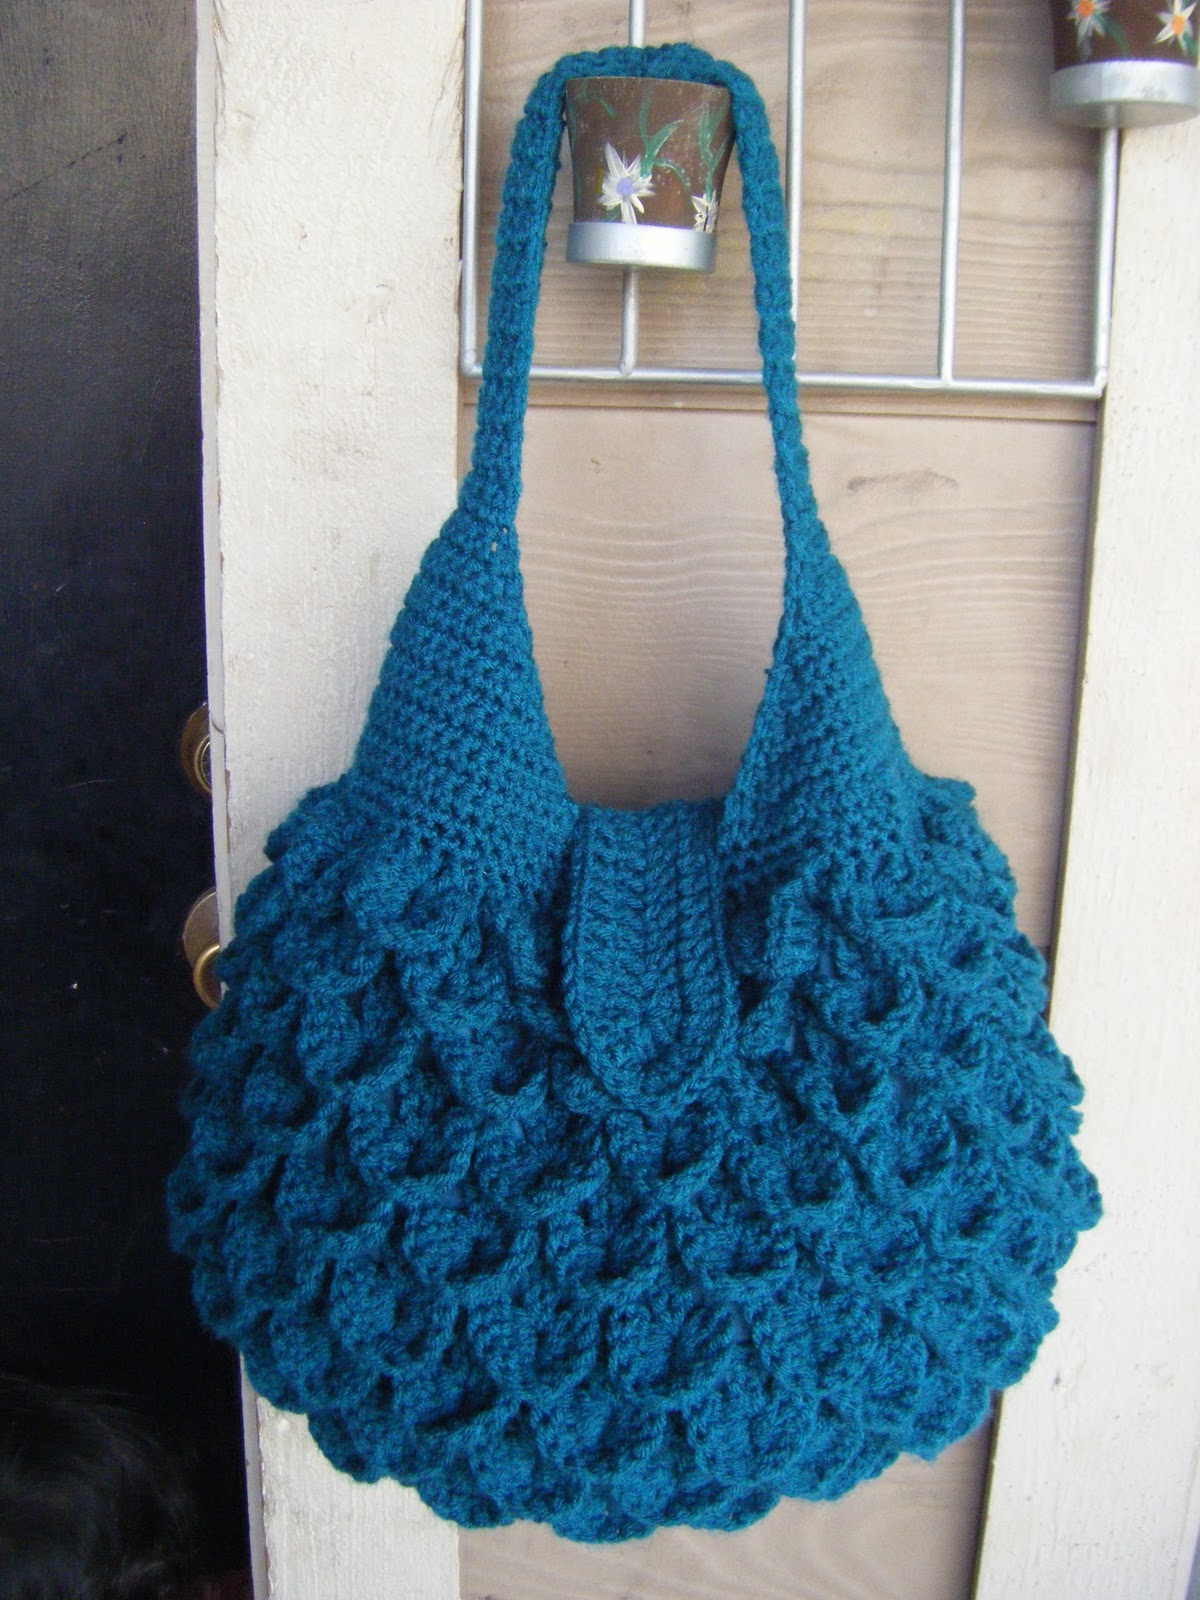 Crochet Book Bag Free Pattern : Free Thread Crochet Purse Pattern Learn to Crochet